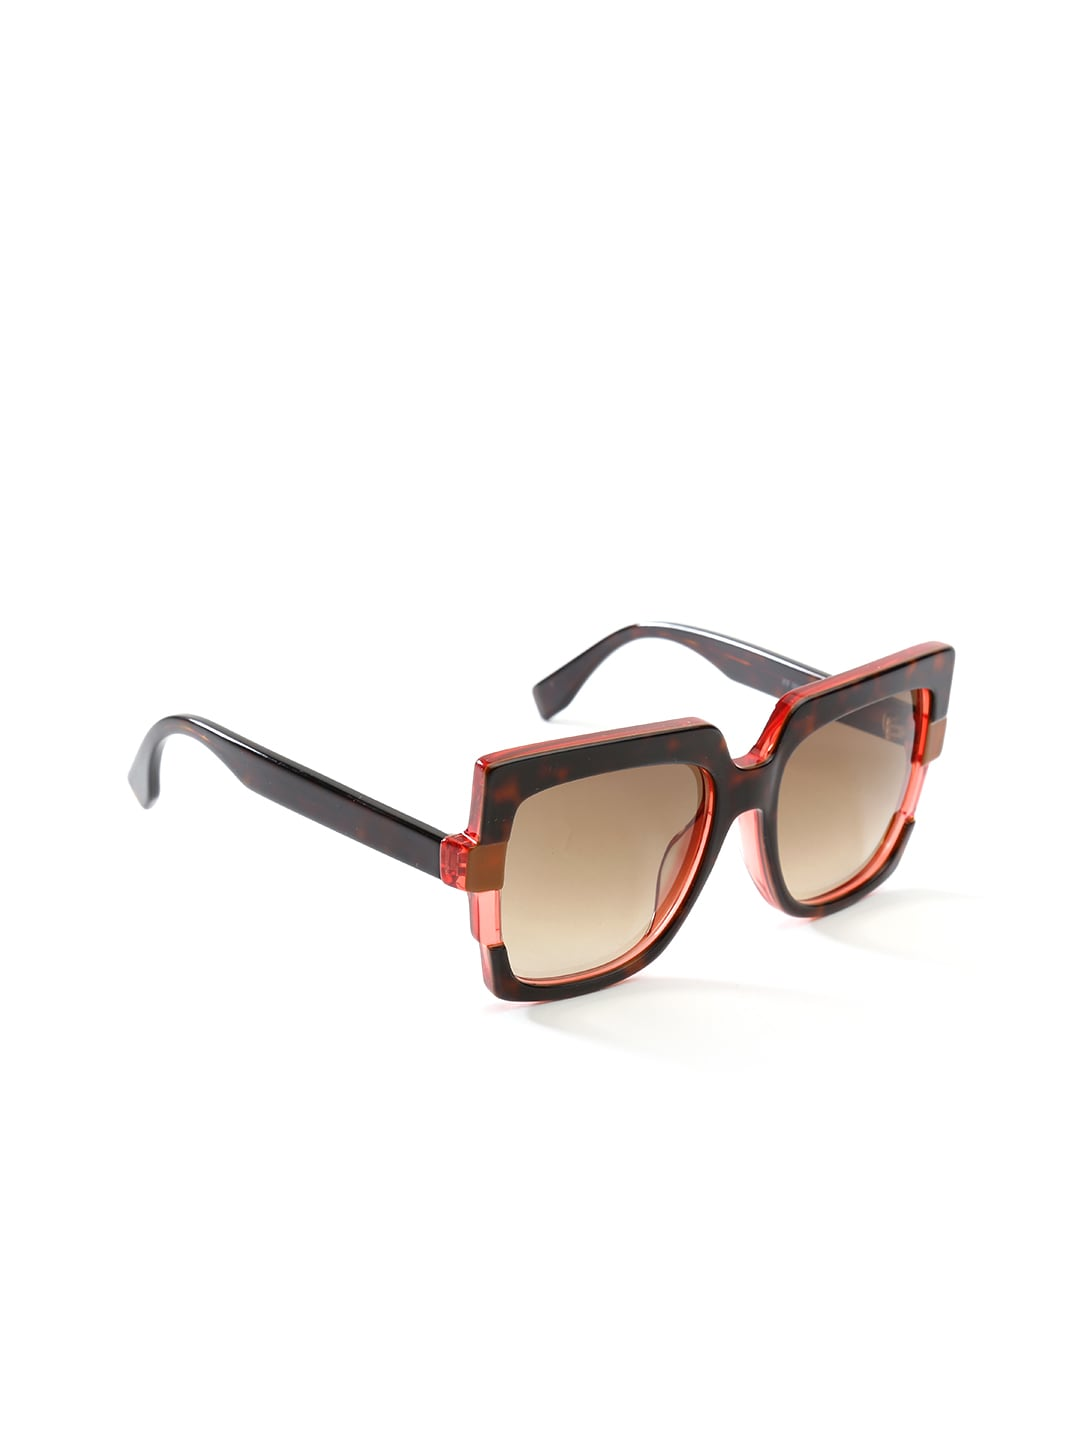 b27479e43b Fendi ff-0062-s-mtvcc Women Square Printed Sunglasses 0062 S Mtvcc- Price in  India